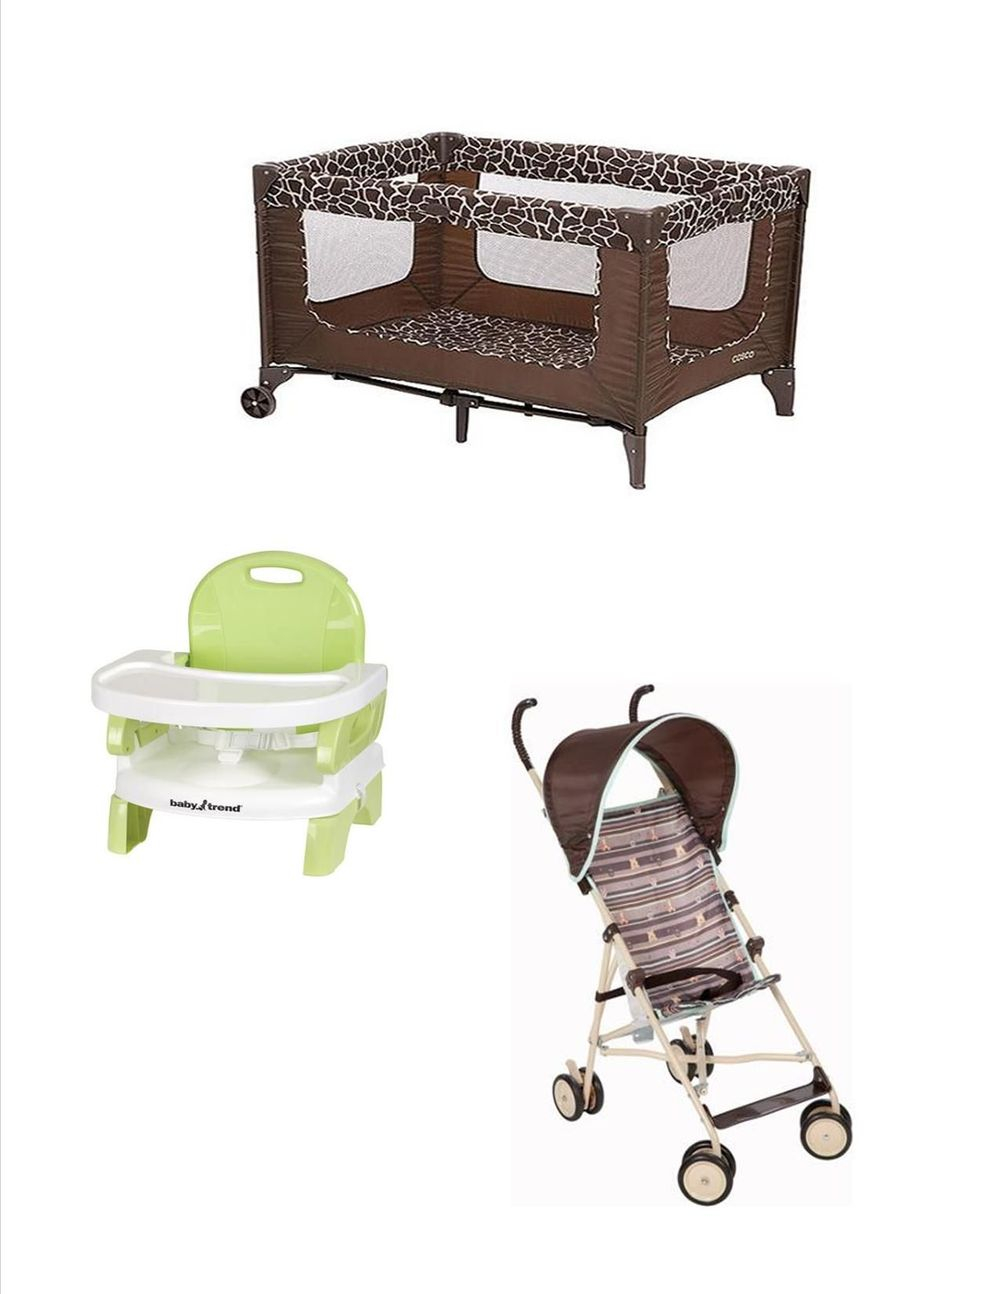 Rent Baby crib and stroller package